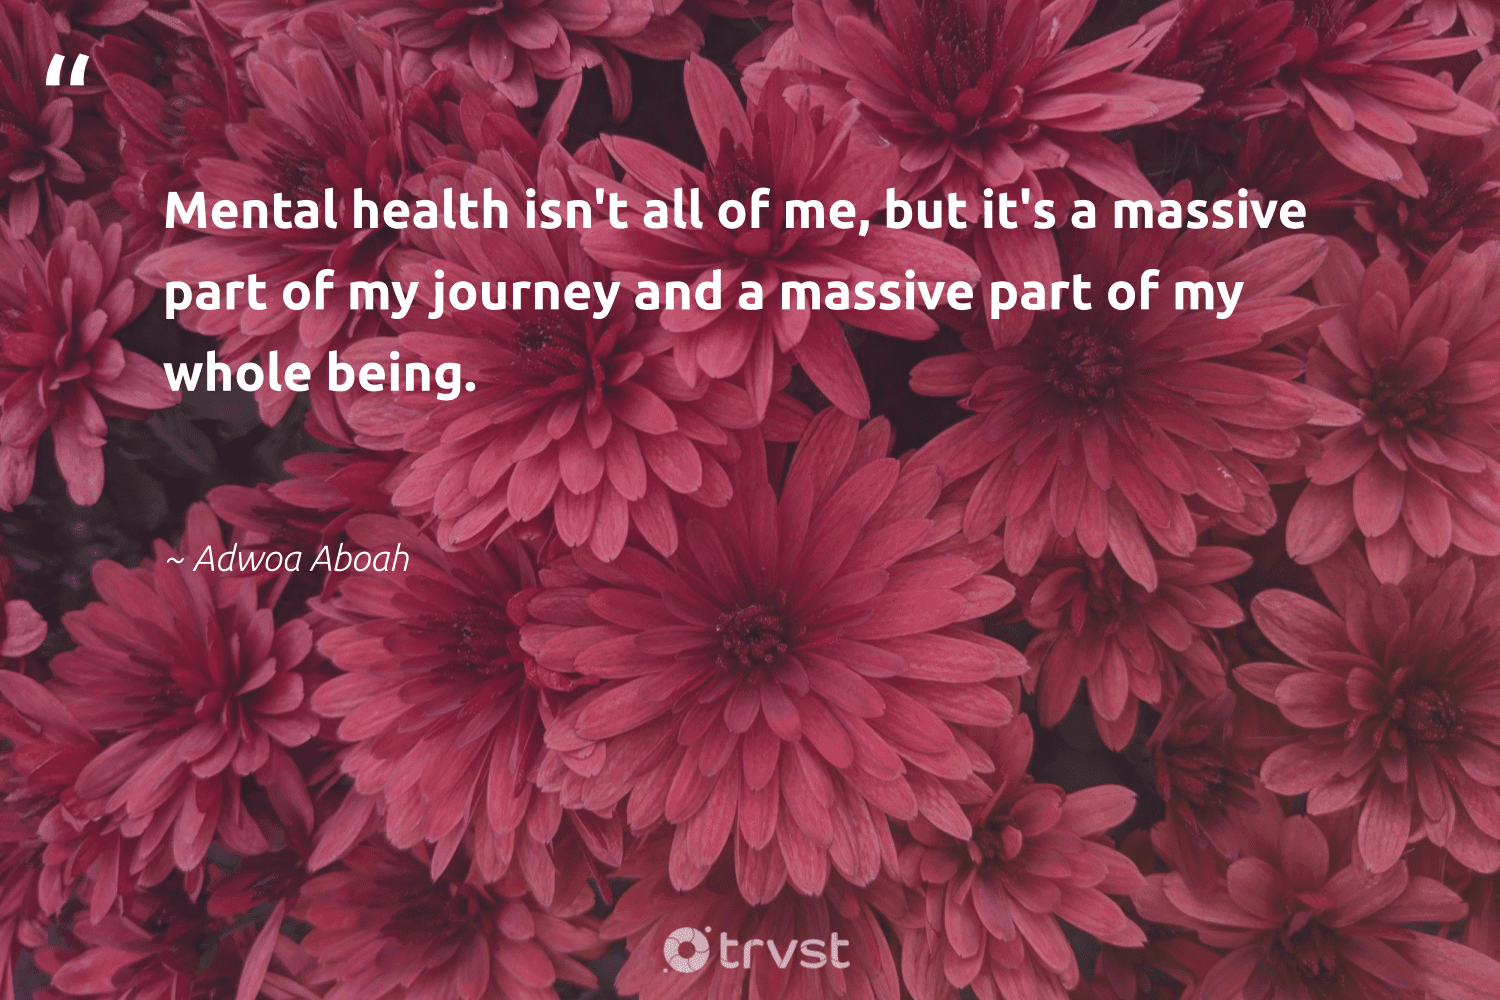 """Mental health isn't all of me, but it's a massive part of my journey and a massive part of my whole being.""  - Adwoa Aboah #trvst #quotes #mentalhealth #health #mentalhealthawareness #mindset #begreat #dogood #mentalhealthmatters #changemakers #nevergiveup #dotherightthing"